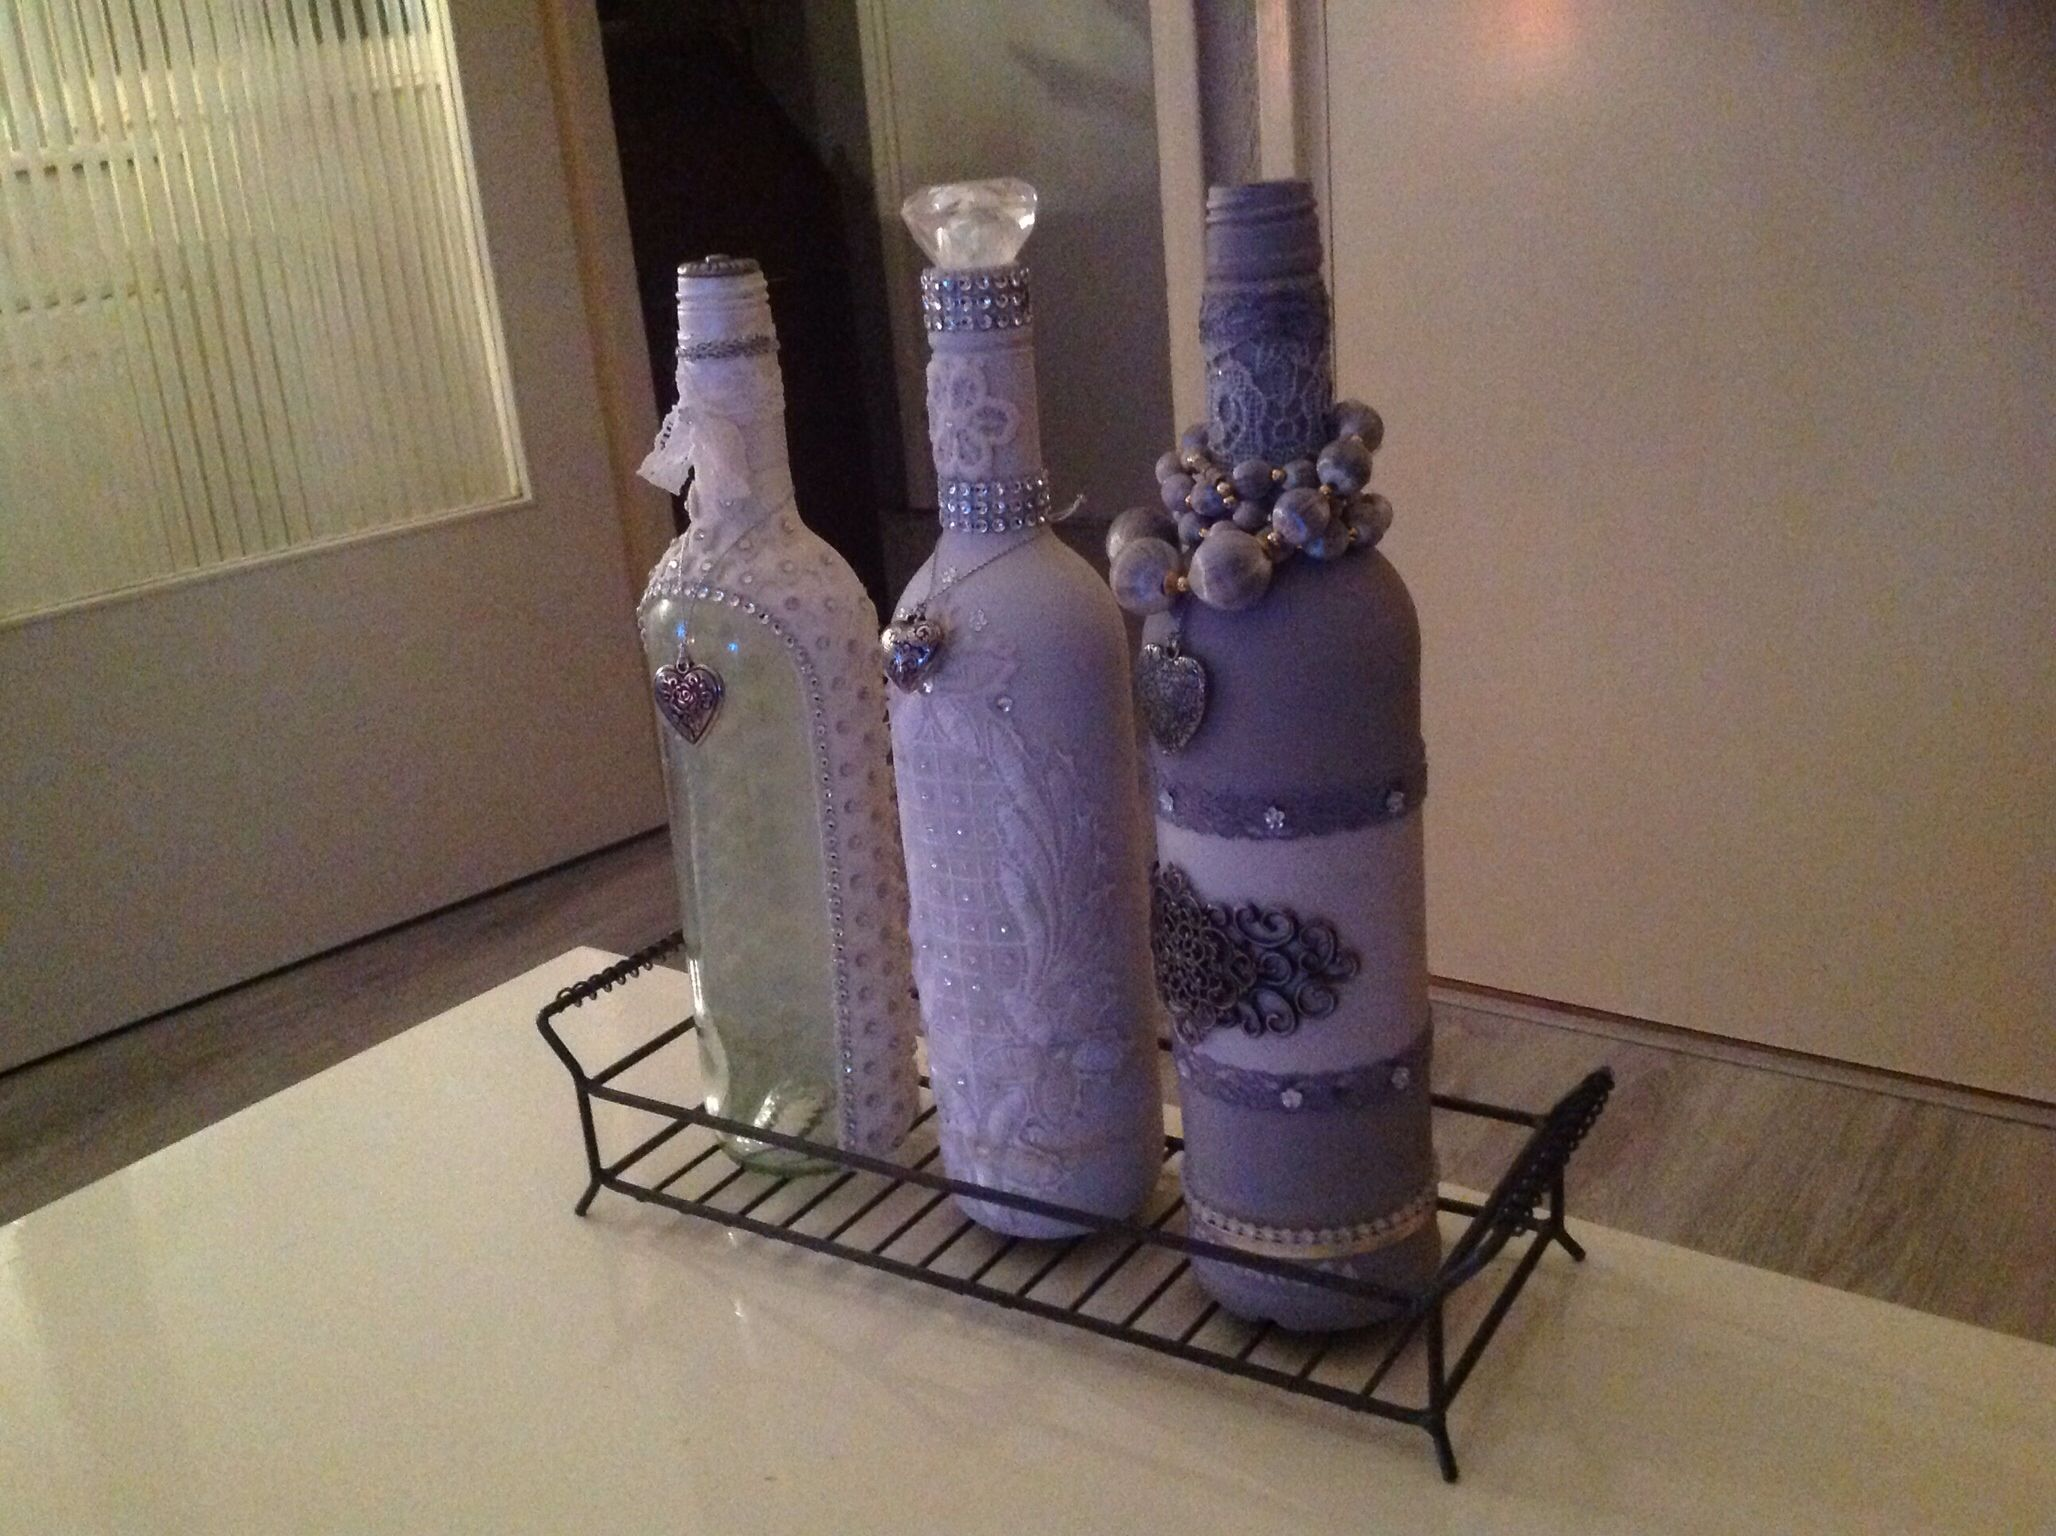 My #diy #handmade decorated #gesso bottles, three in a row. I am absolutely in love with my sweeties :-)